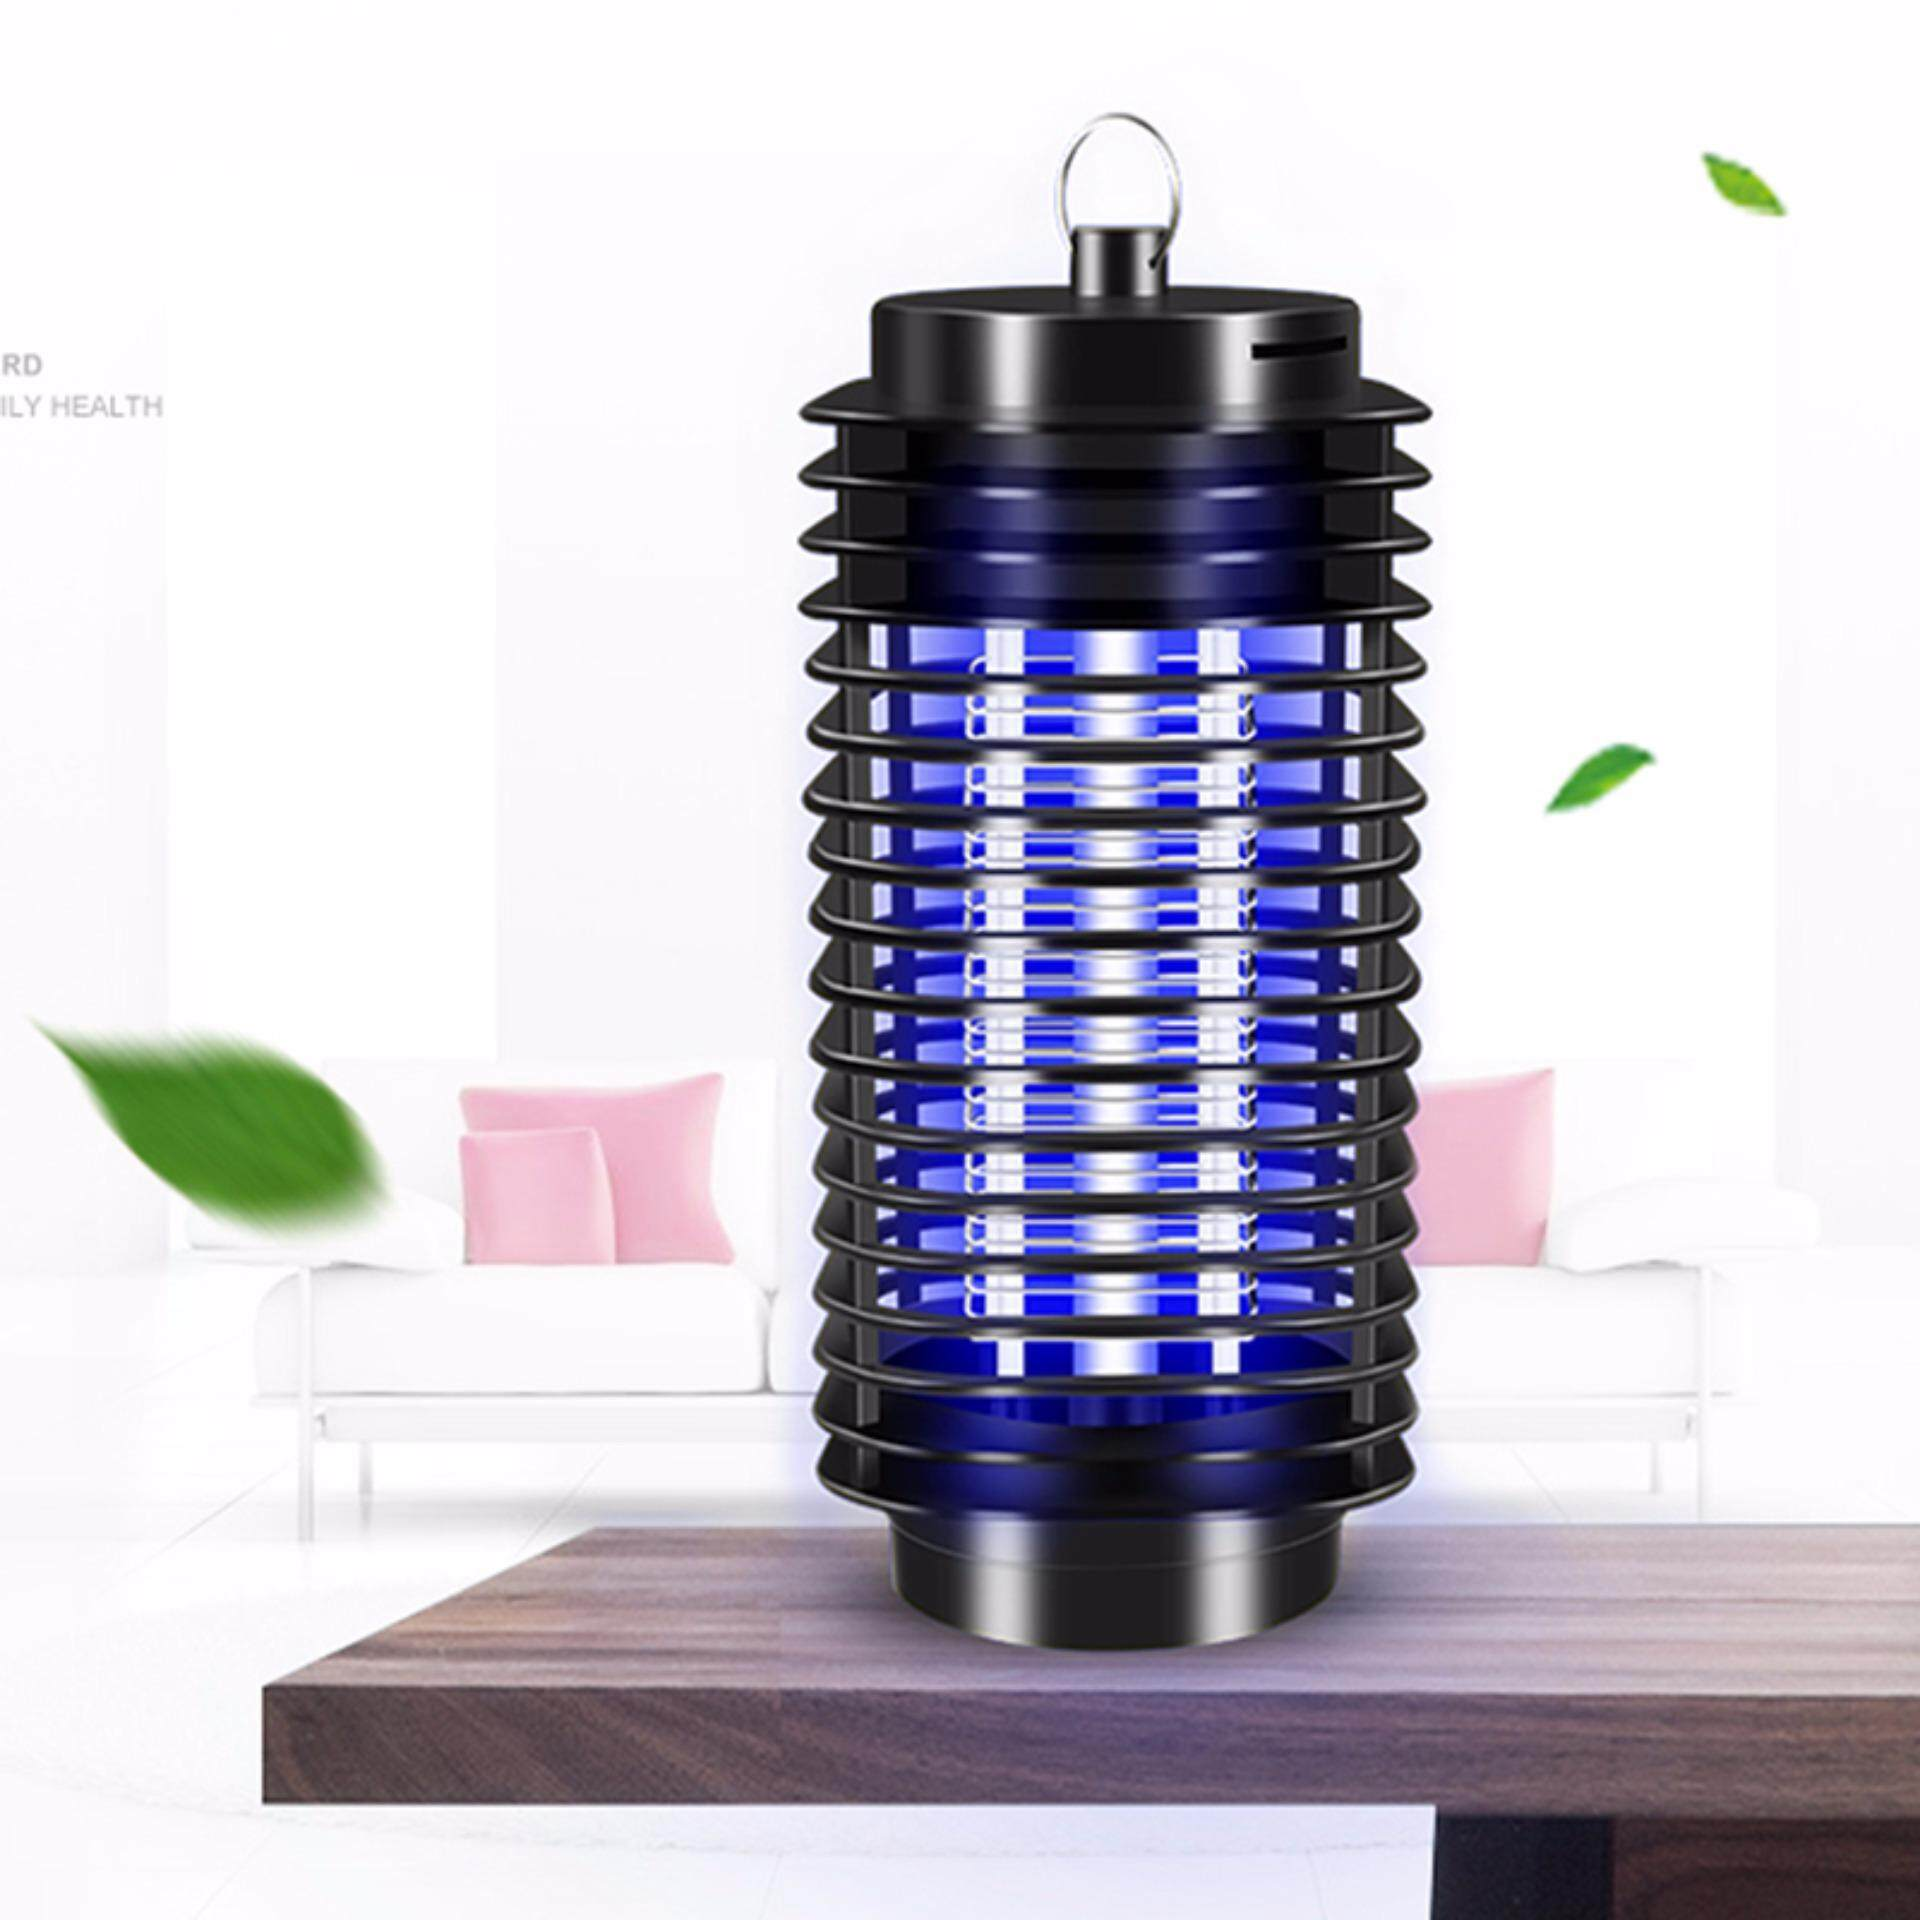 Home Electric Insect Killers Buy At Killer Mosquito Lamp Driver Board Circuit Led Indoor Fly Bug Zapper Trap Pest Control Black Eu